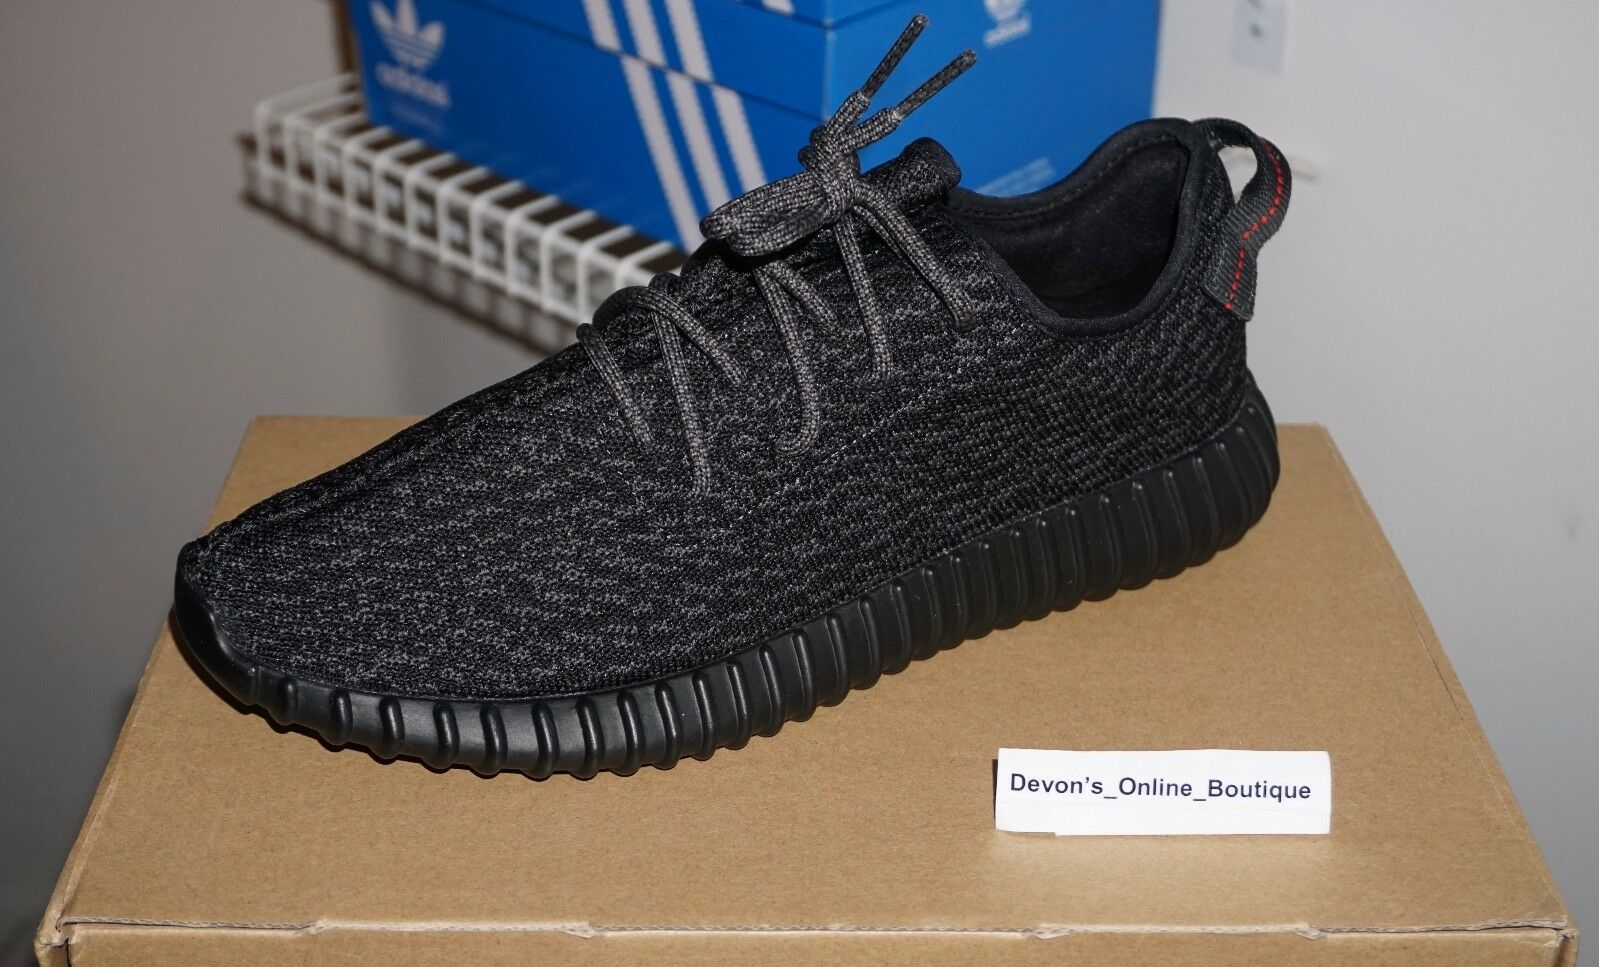 YEEZY BOOST 350 'Pirate Black 2016' - Size 11, VNDS, BB5350, TRUSTED SELLER